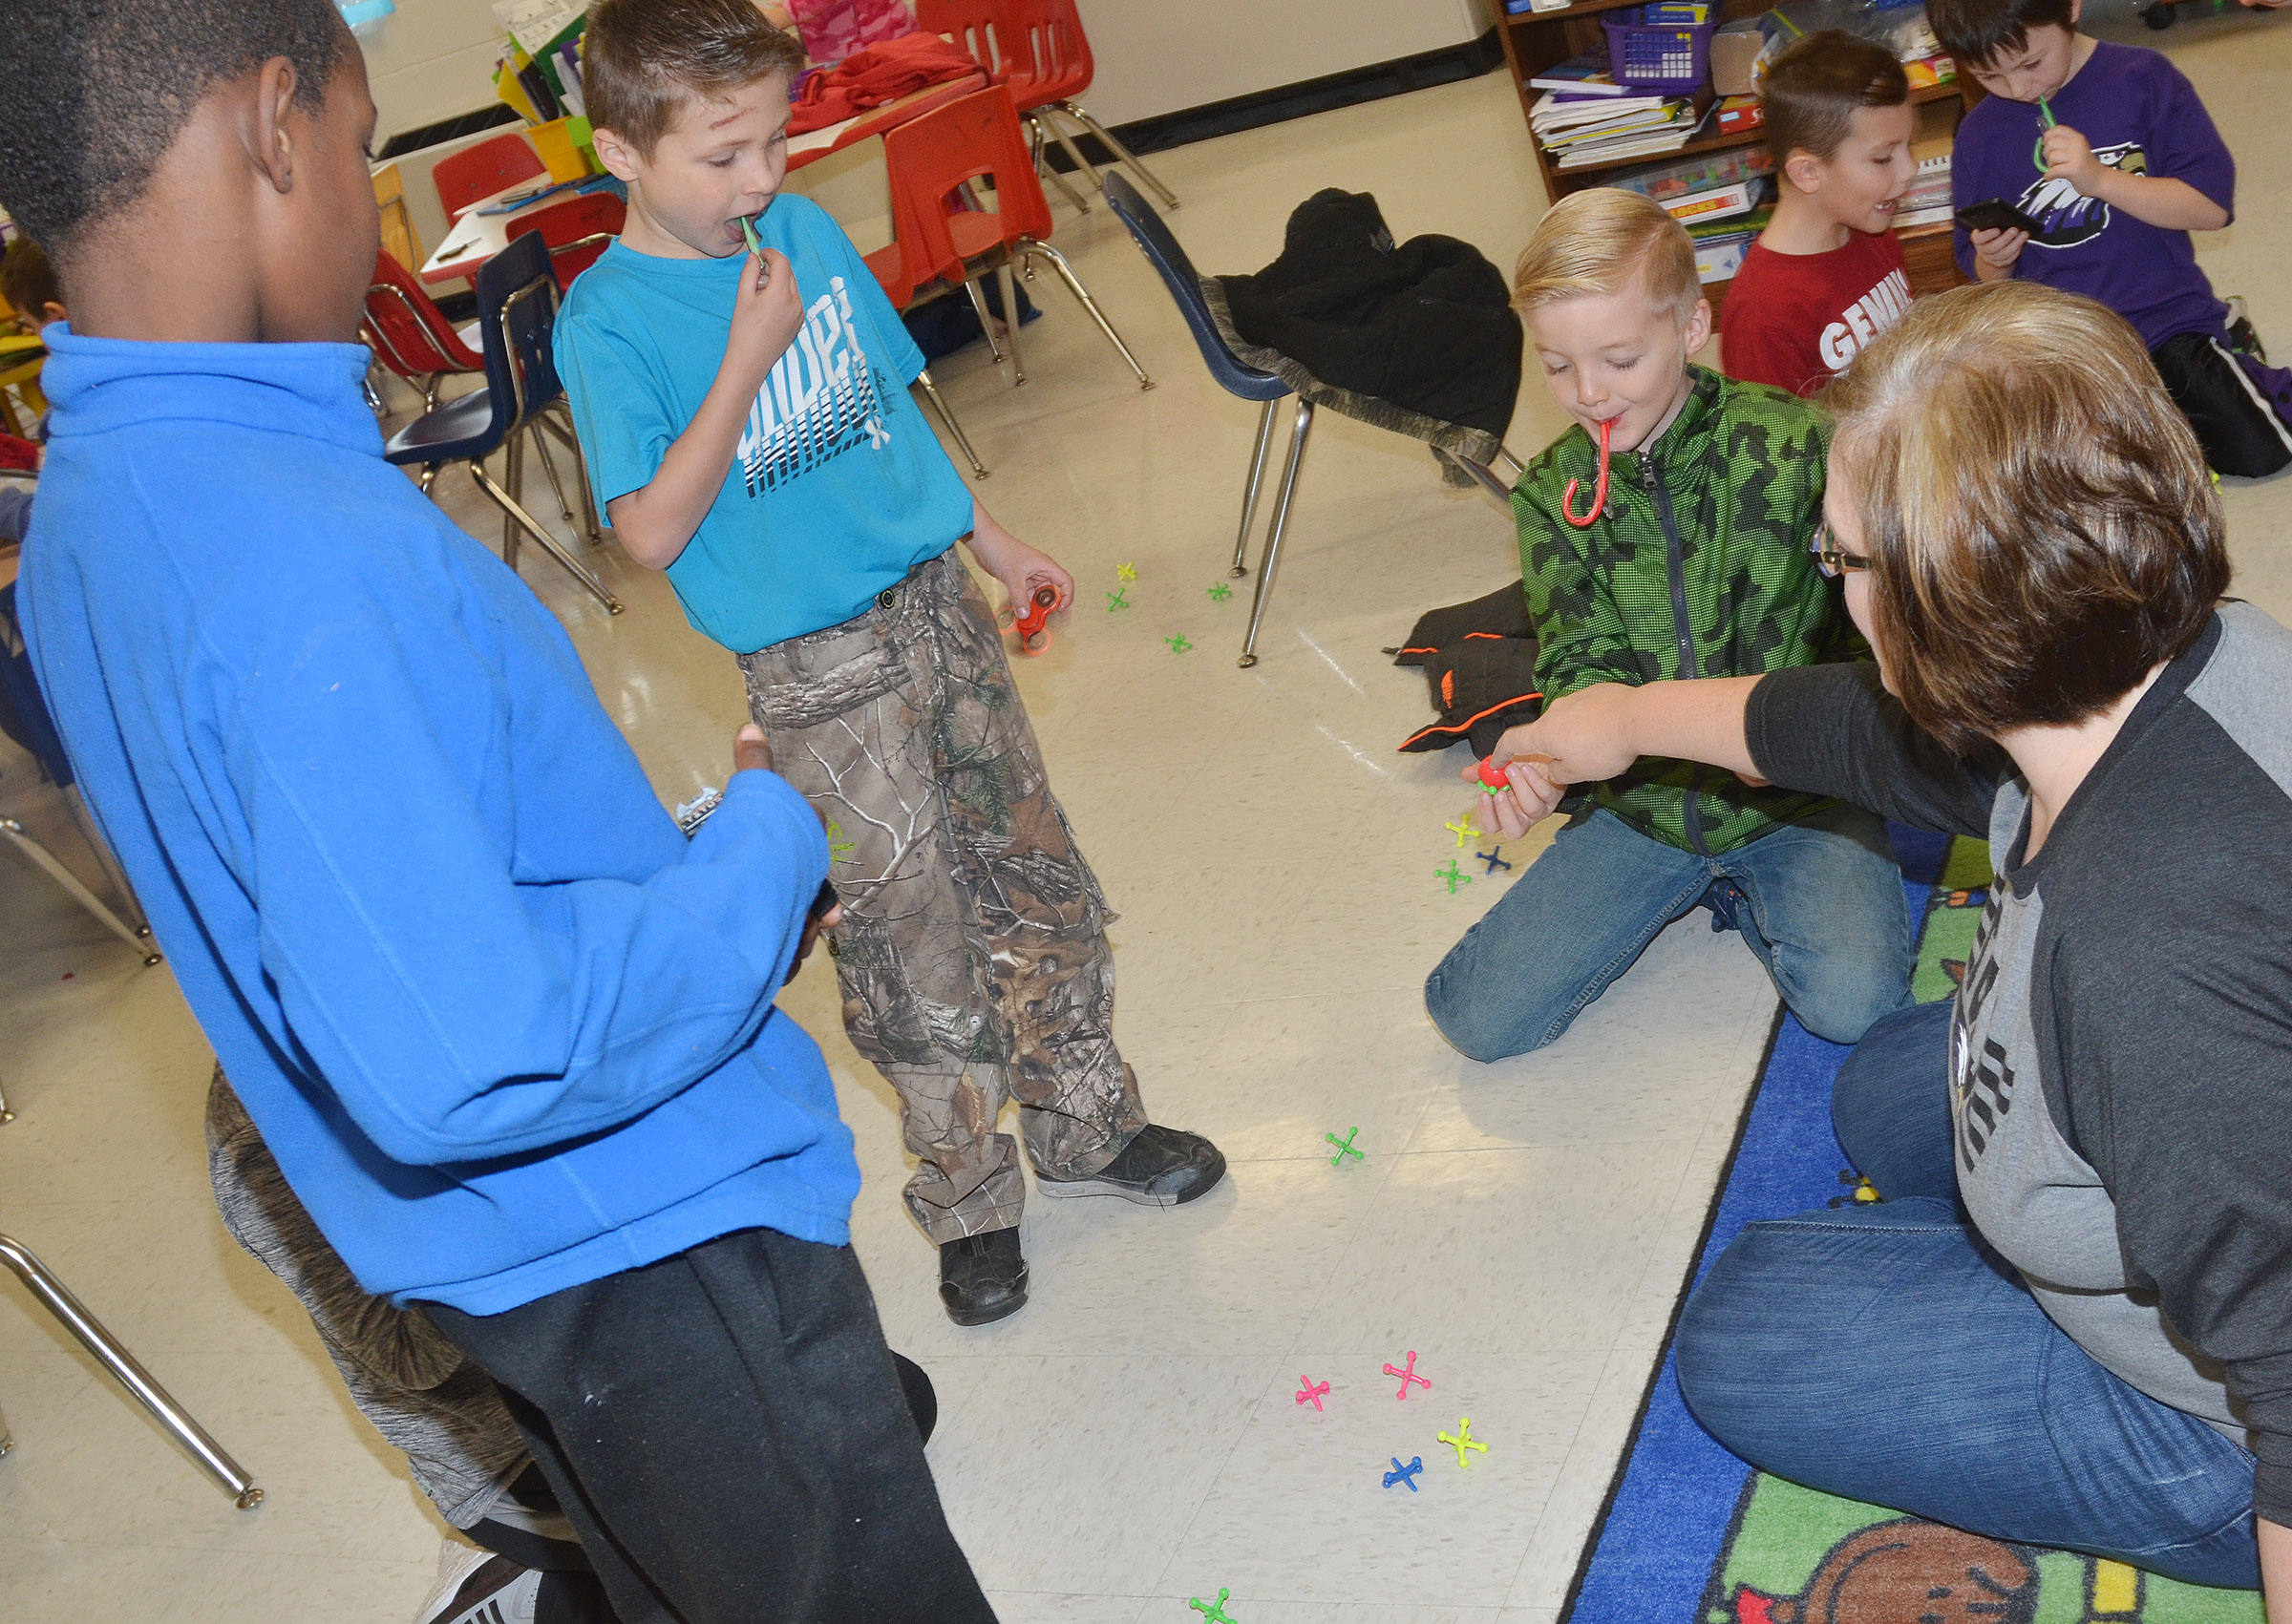 CES second-grade teacher Tonya Hagan plays Jacks with her students. From left are Lazarick Miller, Bryson Gabehart and Parker Scharbrough.